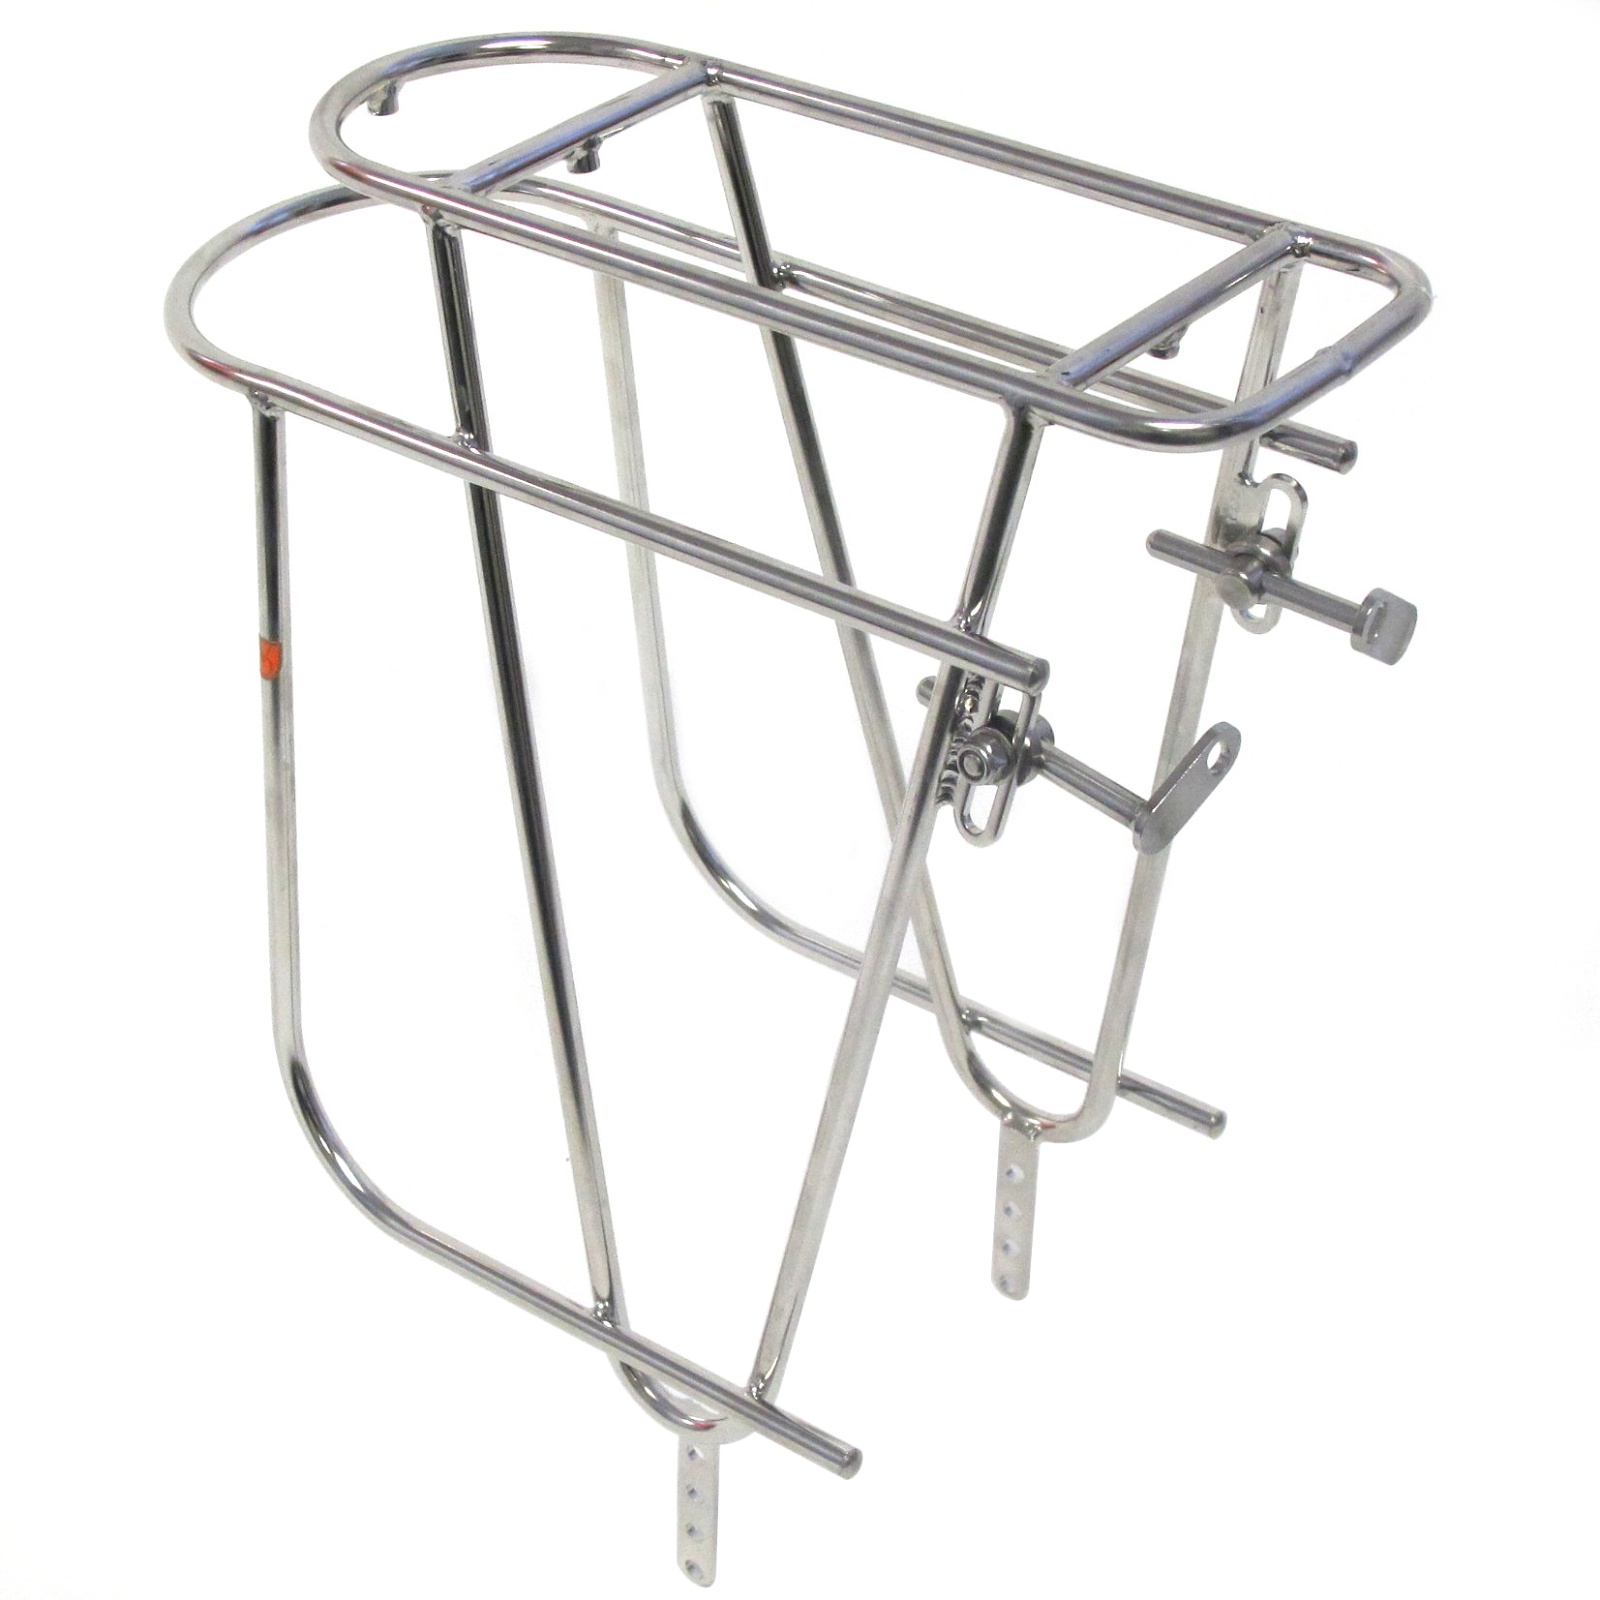 the velo orange blog campeur racks reviewed. Black Bedroom Furniture Sets. Home Design Ideas